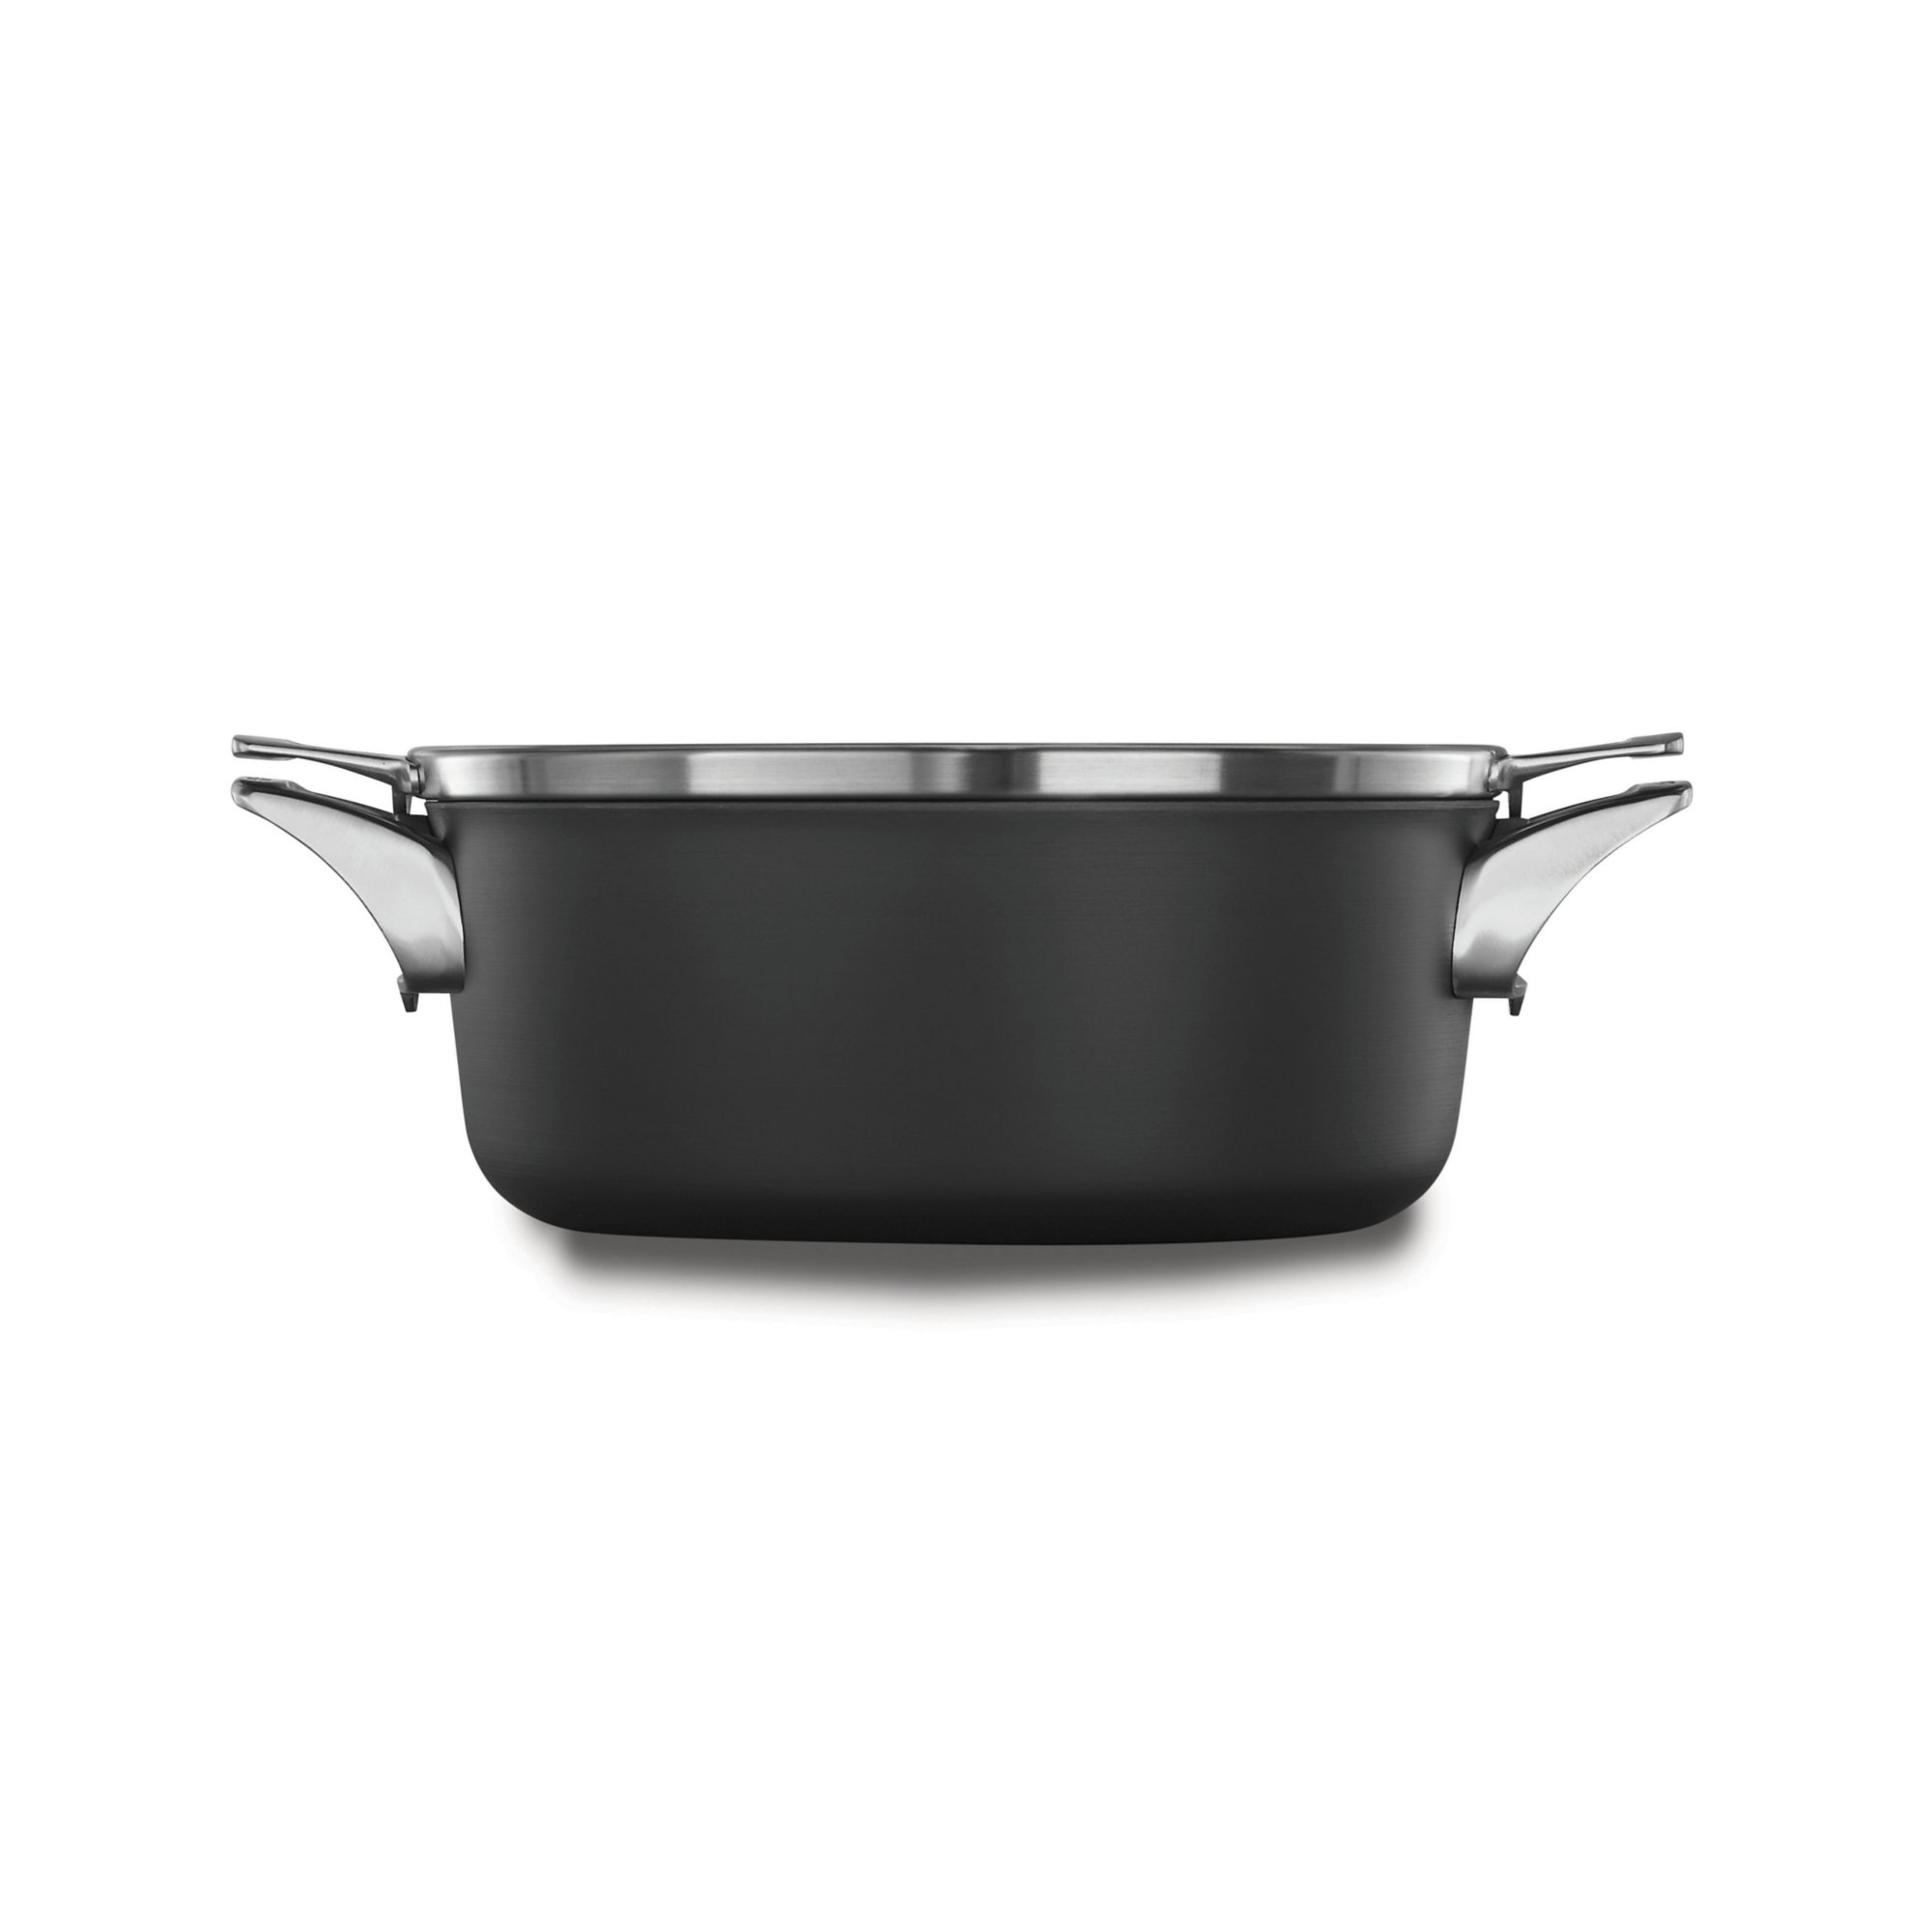 Calphalon Premier™ Space Saving Hard Anodized Nonstick 5 qt. Dutch Oven with Cover